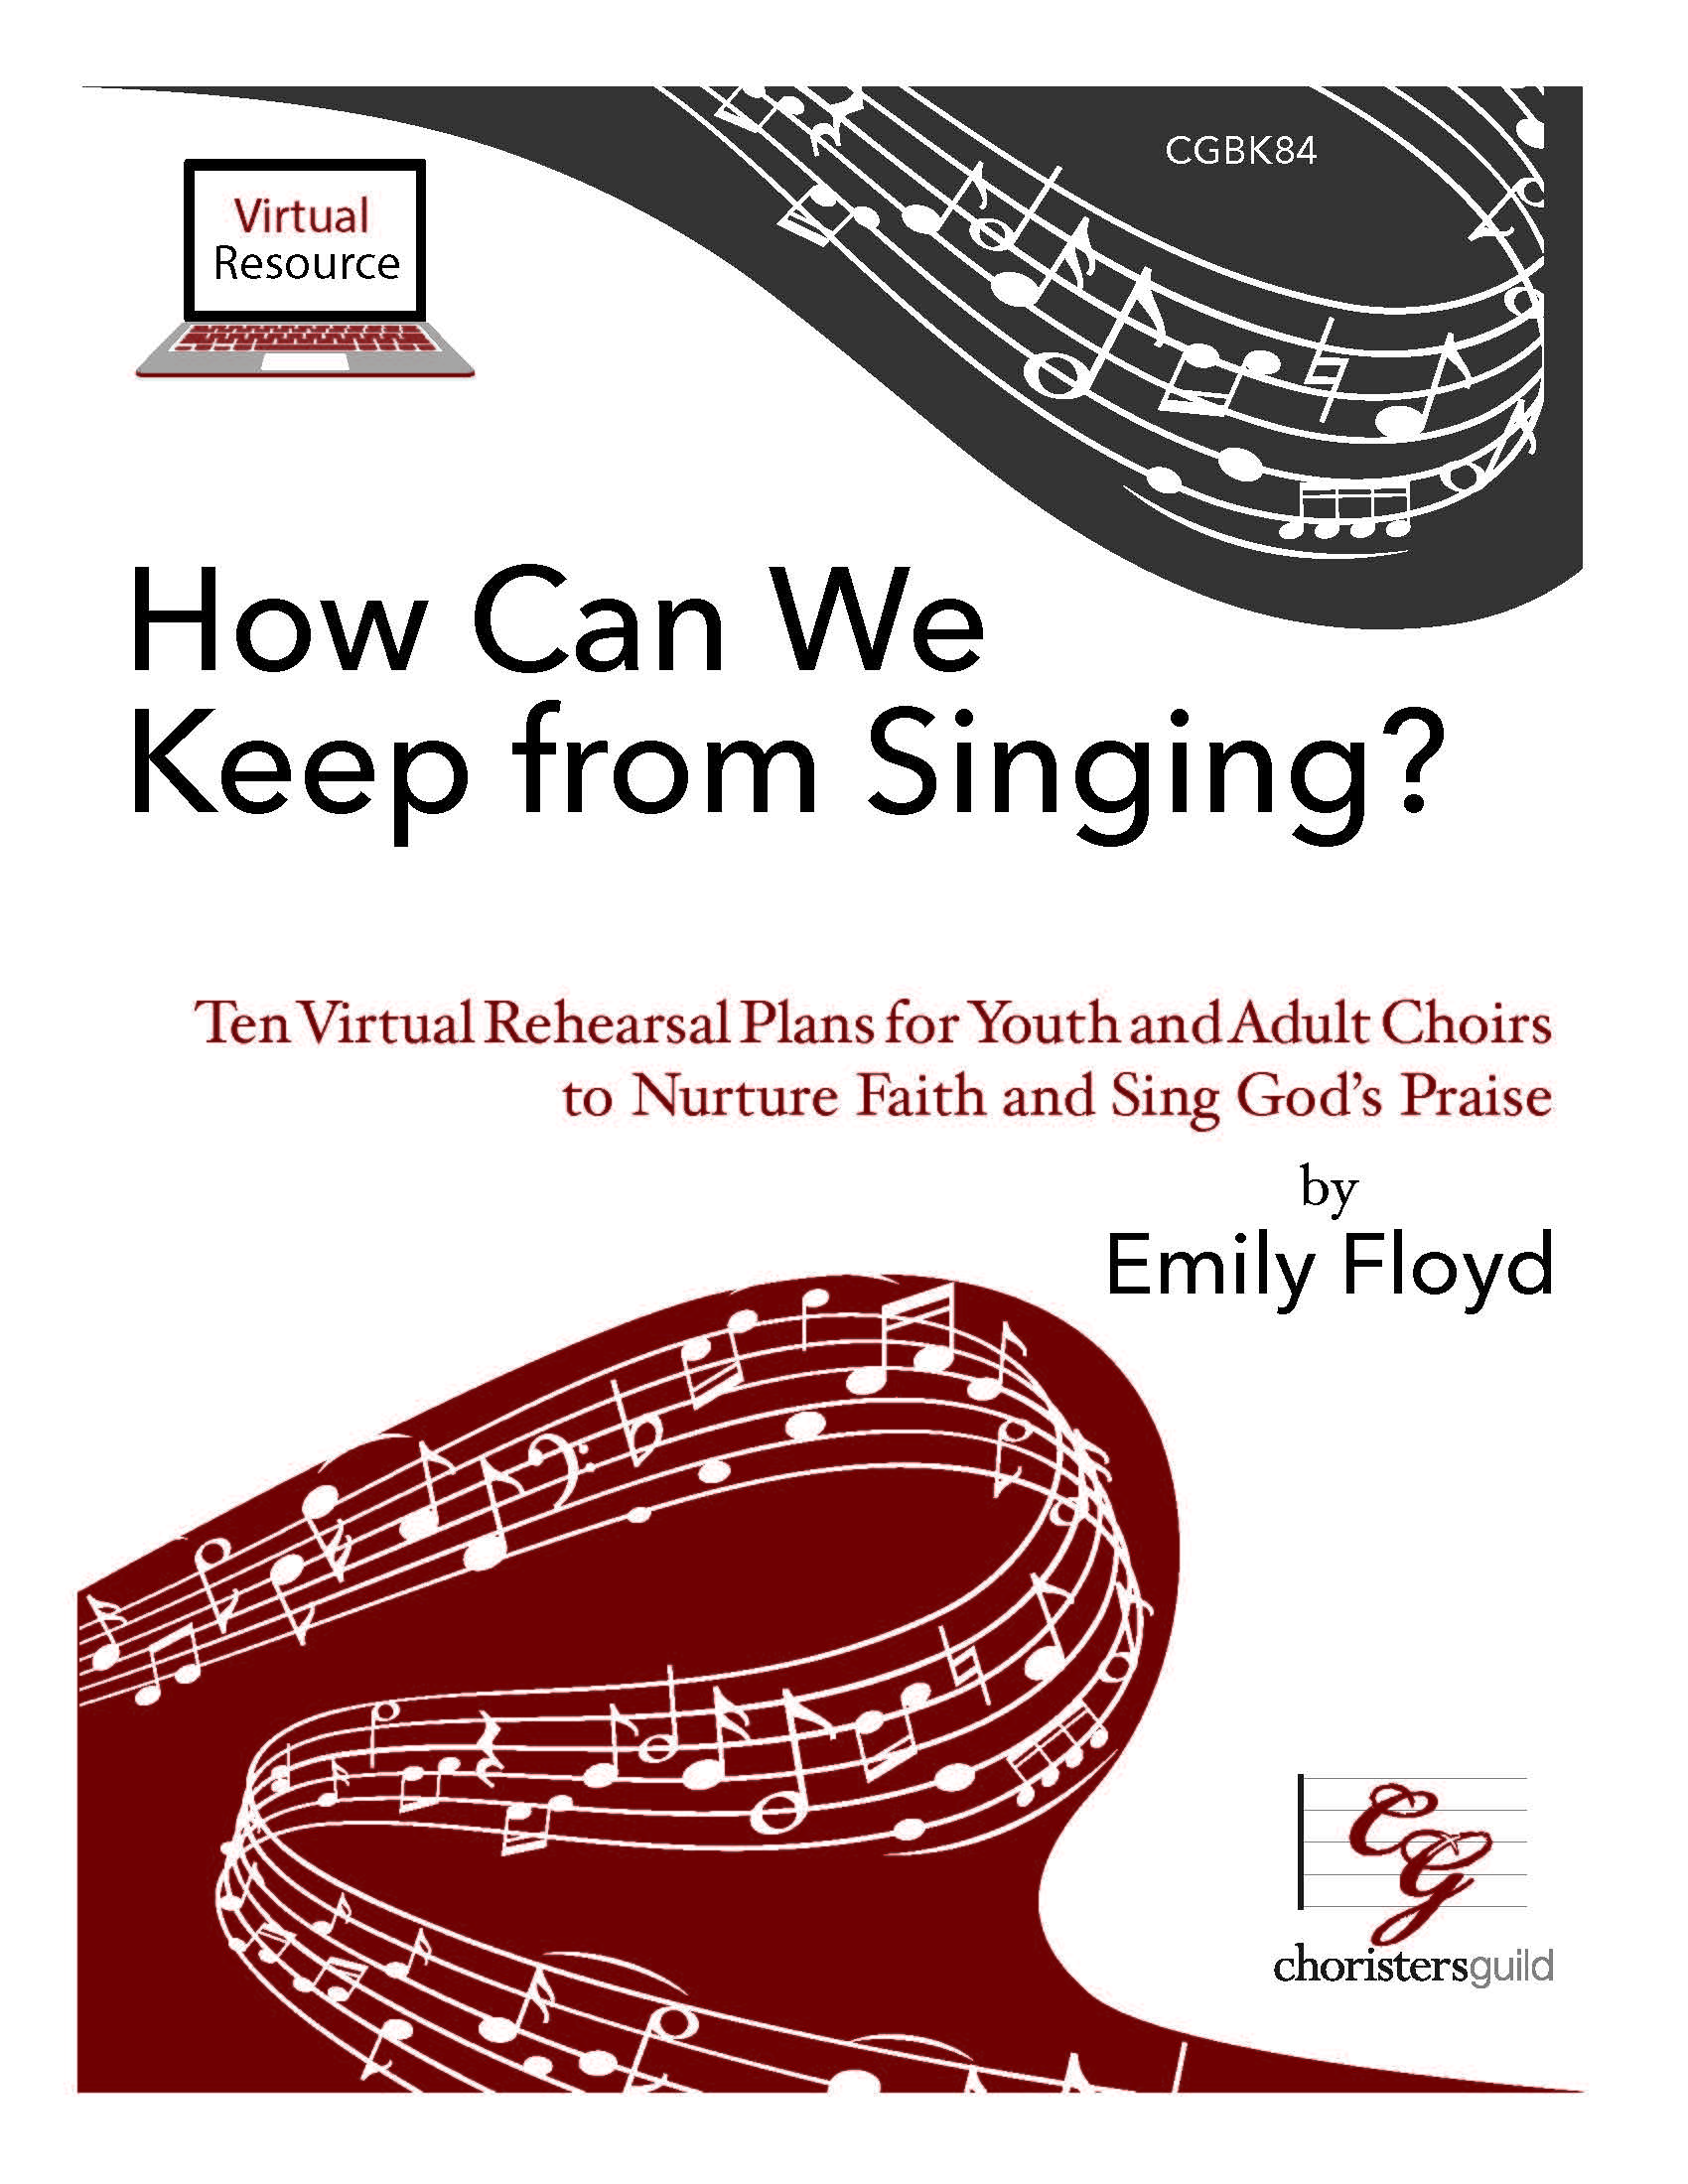 How Can We Keep from Singing - Digital Resource